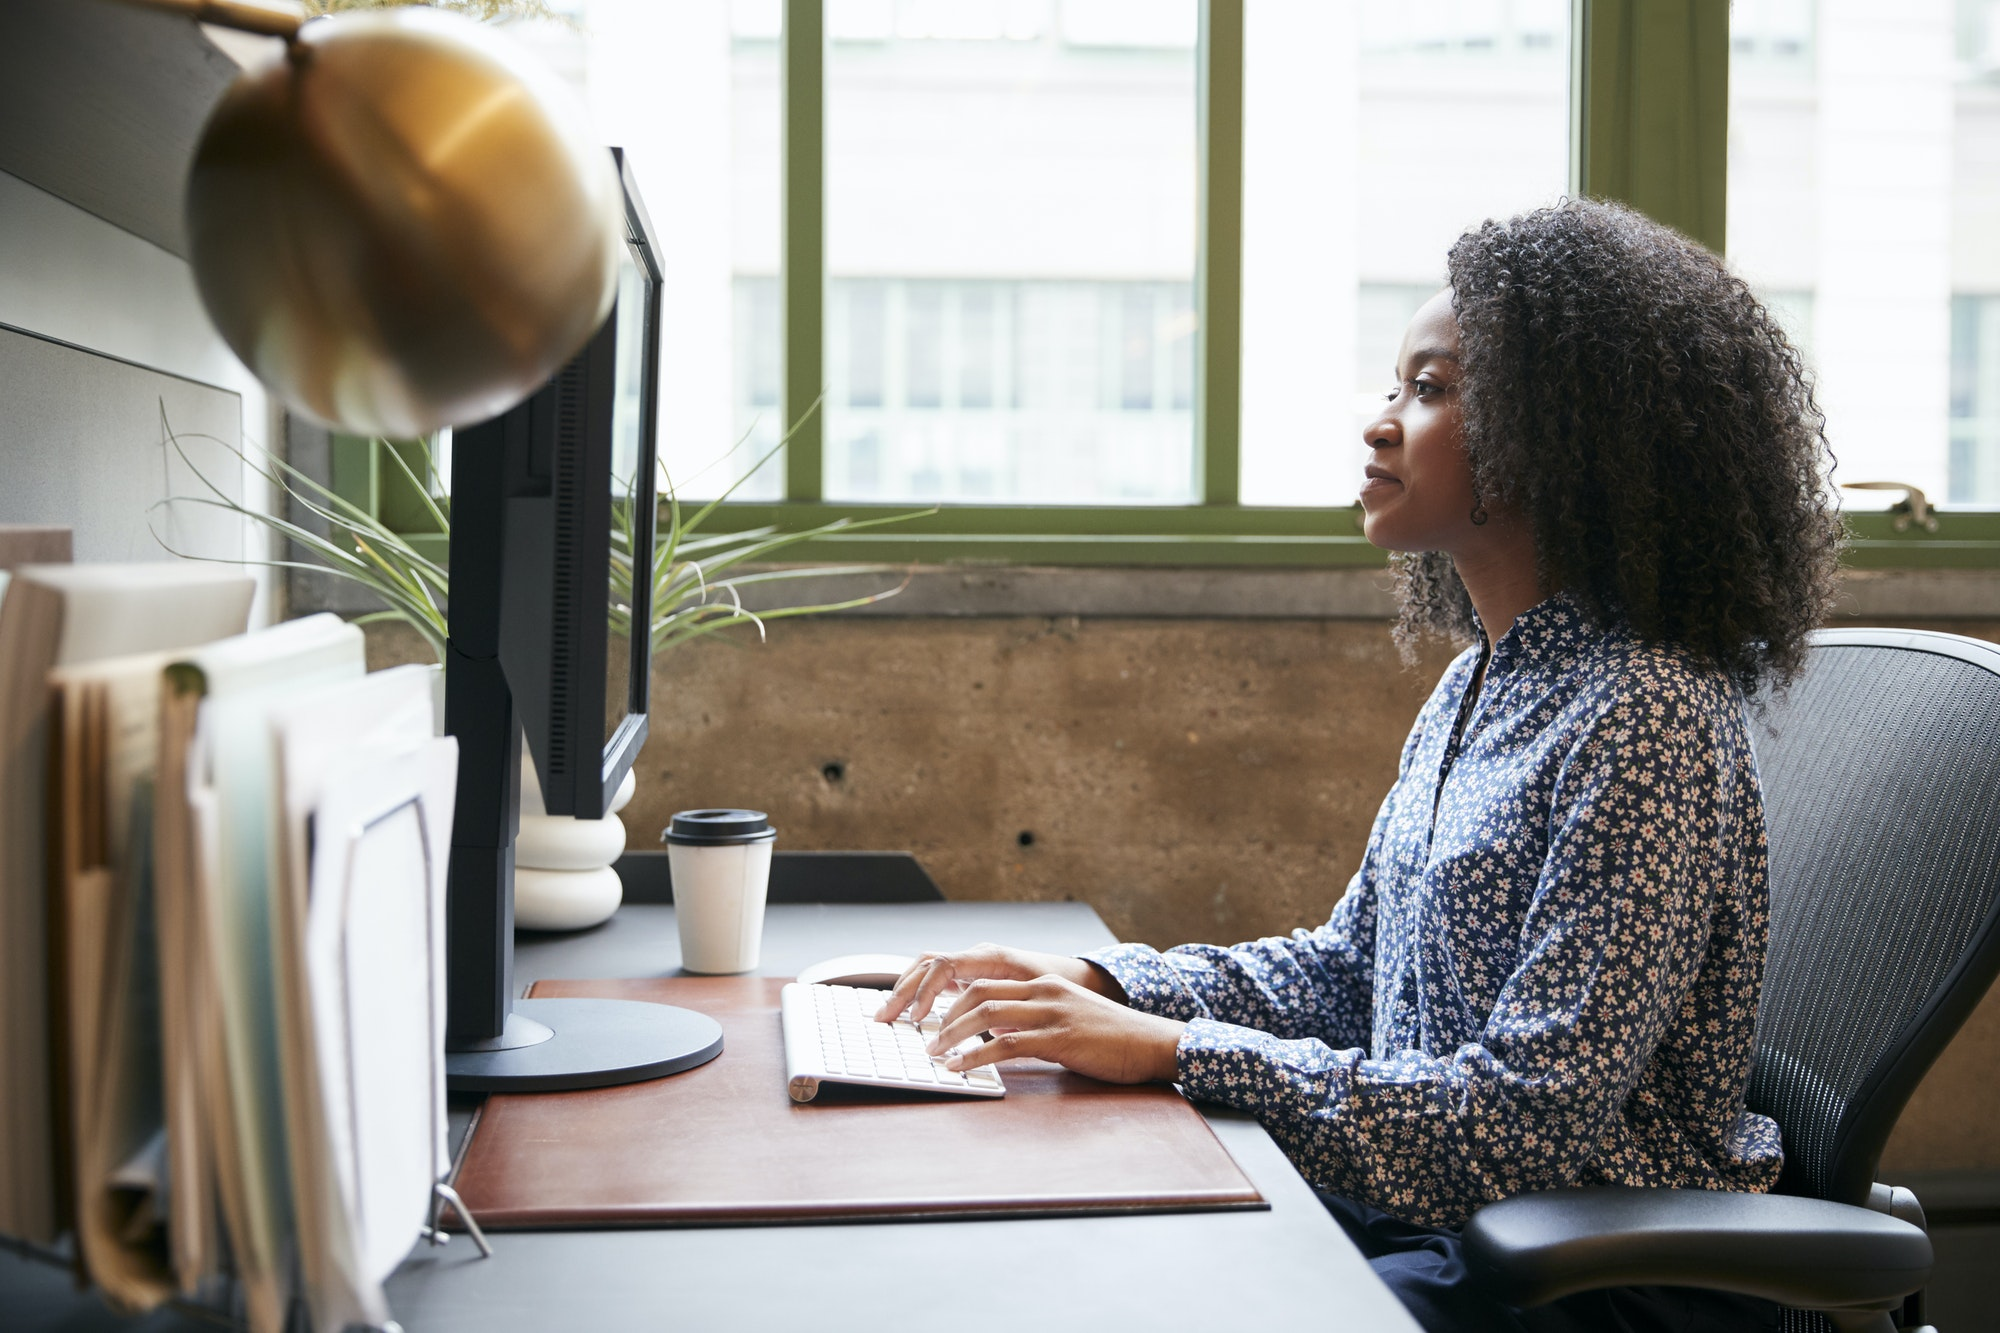 Black woman working at a computer in an office, side view